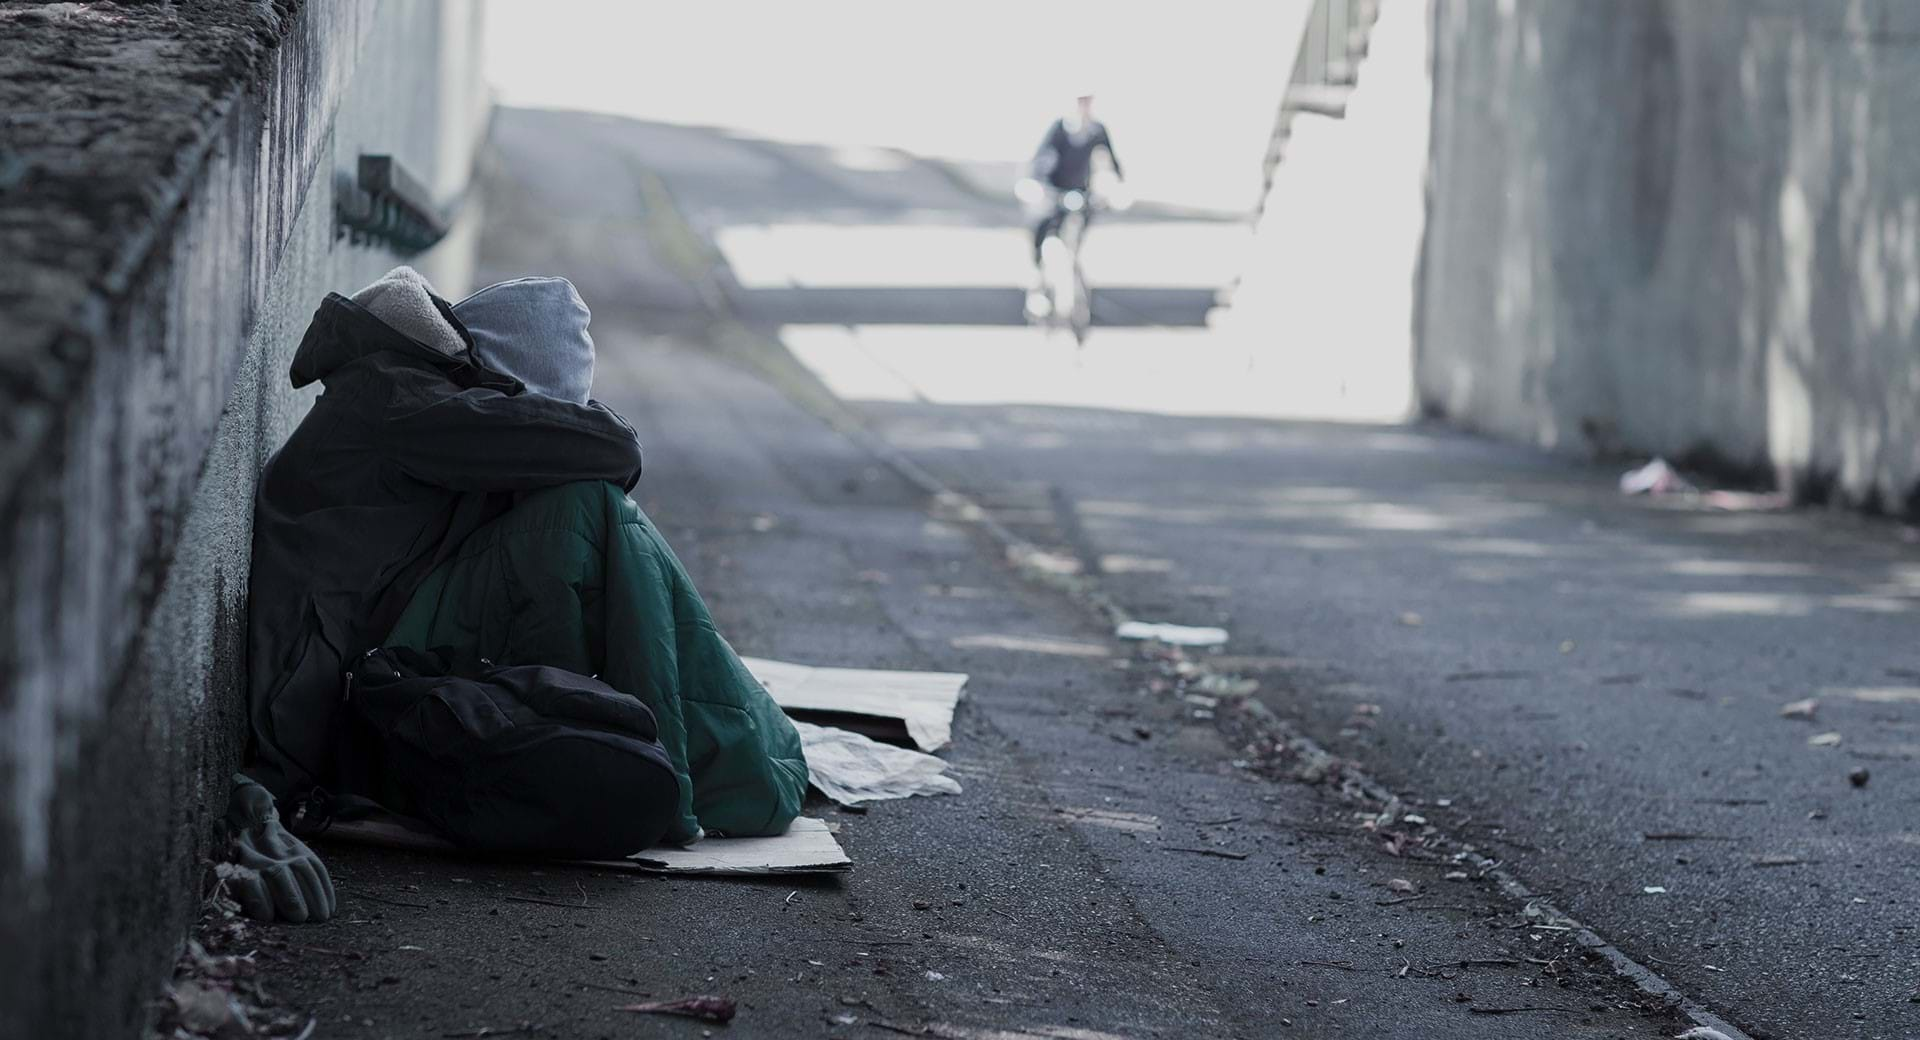 An image of a homeless and cold young person out on the streets.